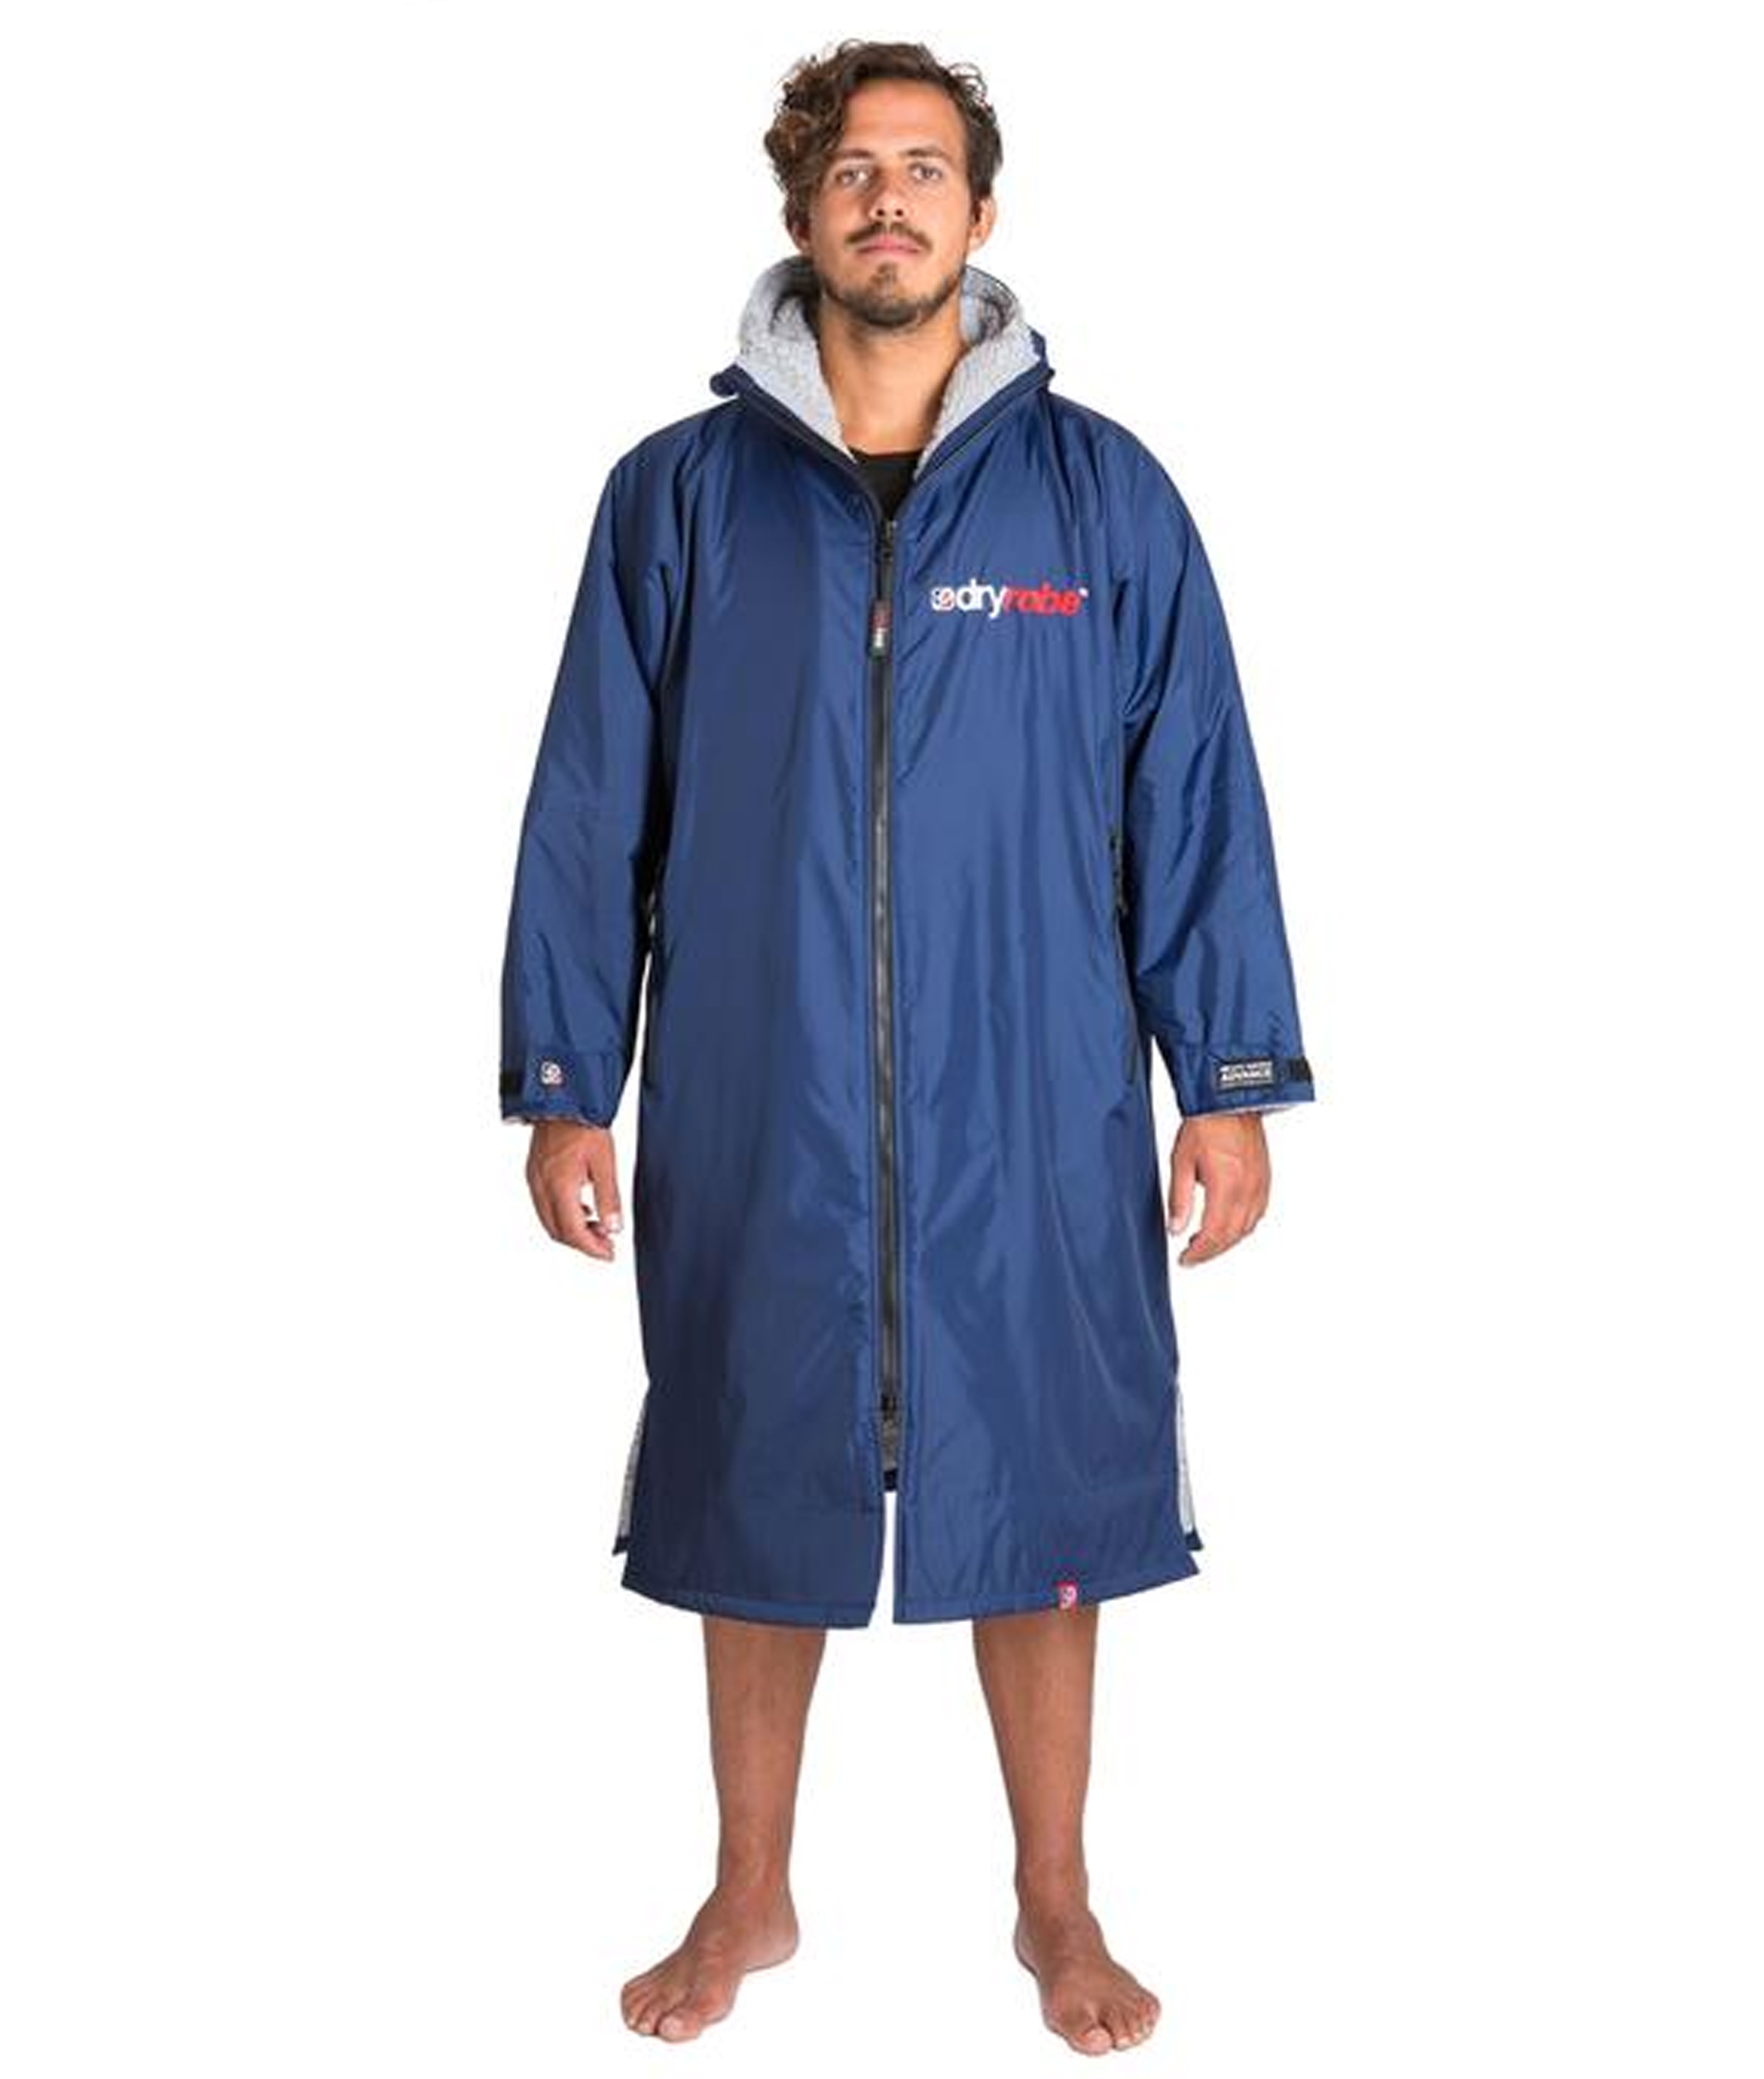 Dryrobe Advance Long Sleeve Navy Blue/Grey - Large